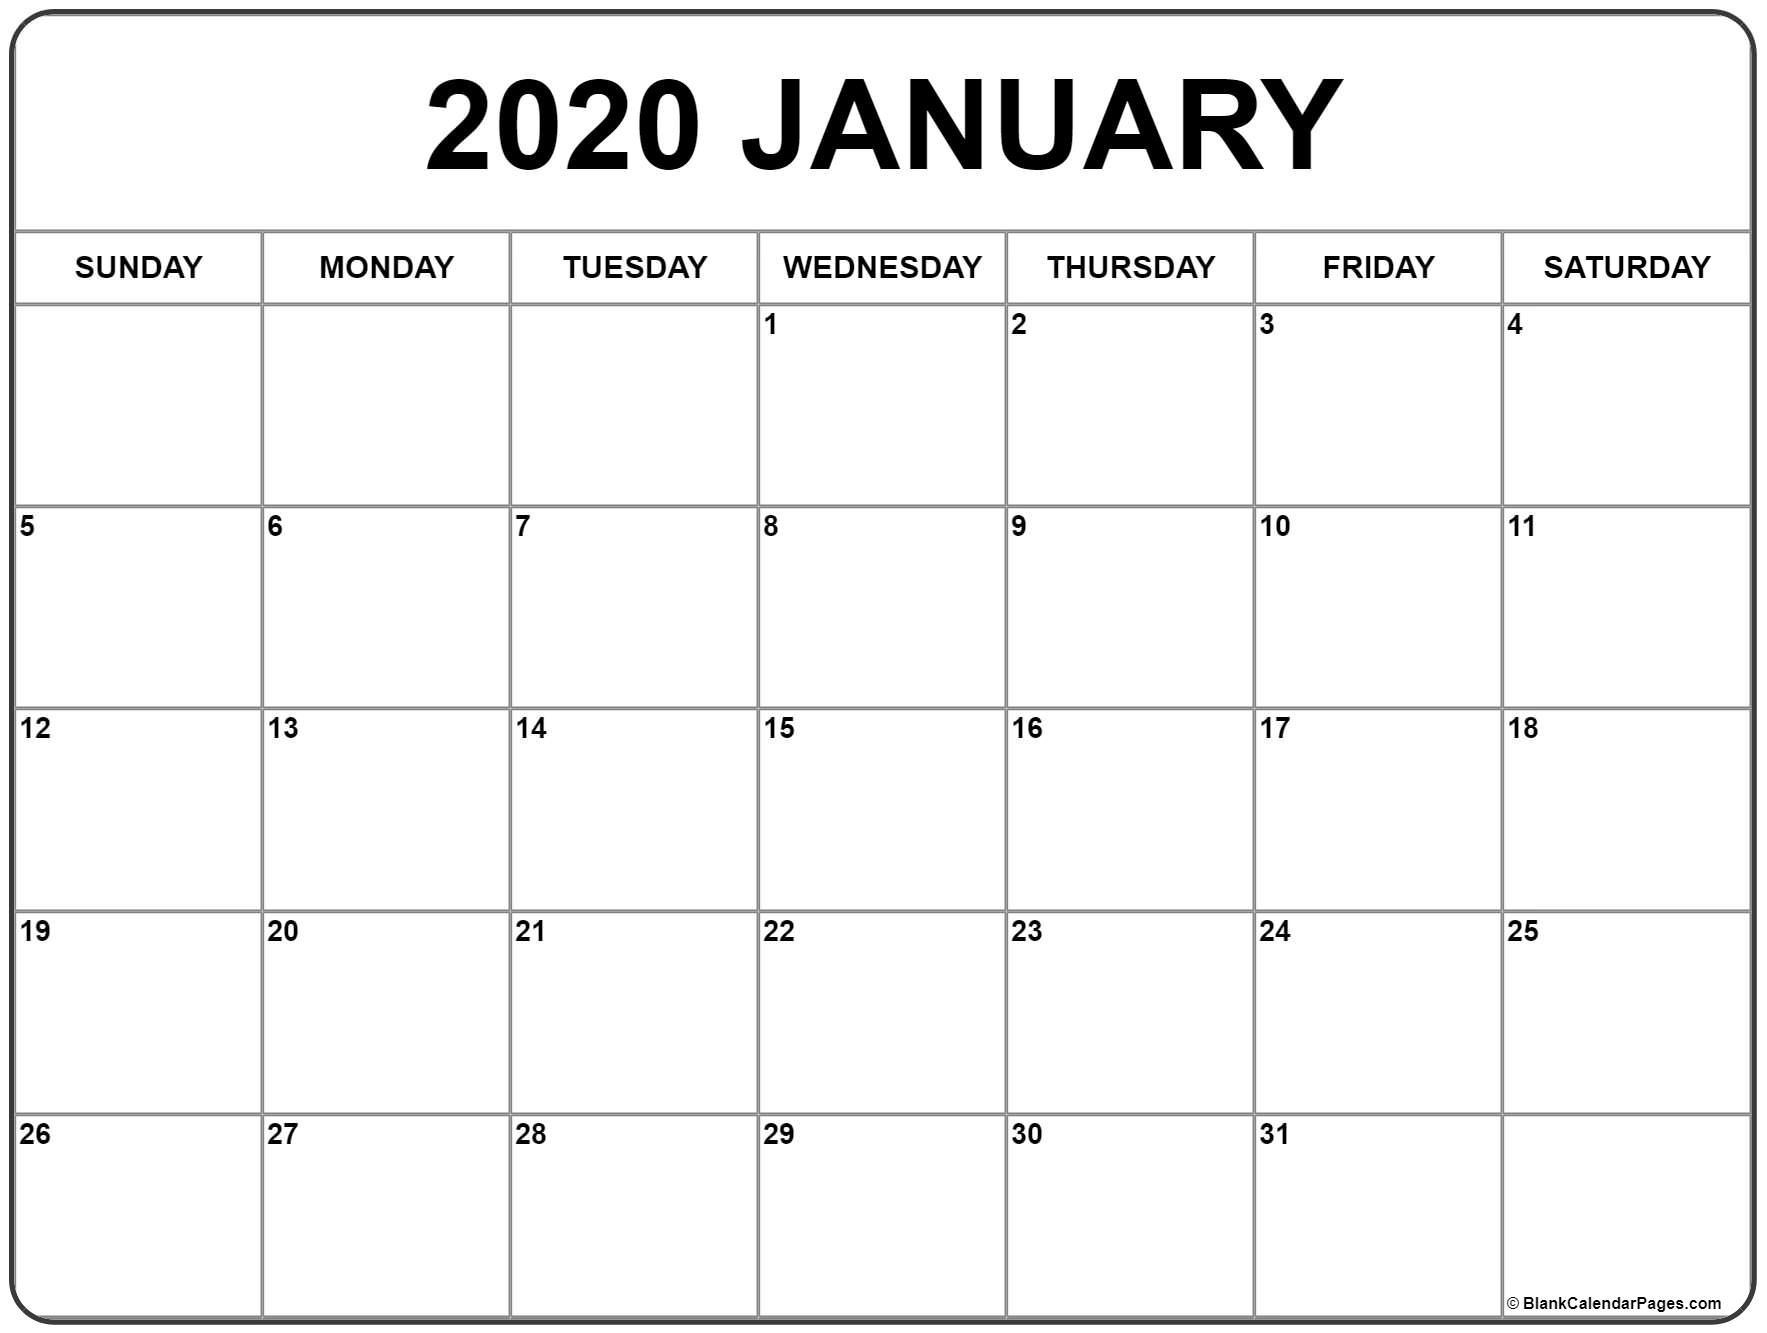 January 2020 Calendar | Free Printable Monthly Calendars-Print Off Monthly Calender For June And July 2020